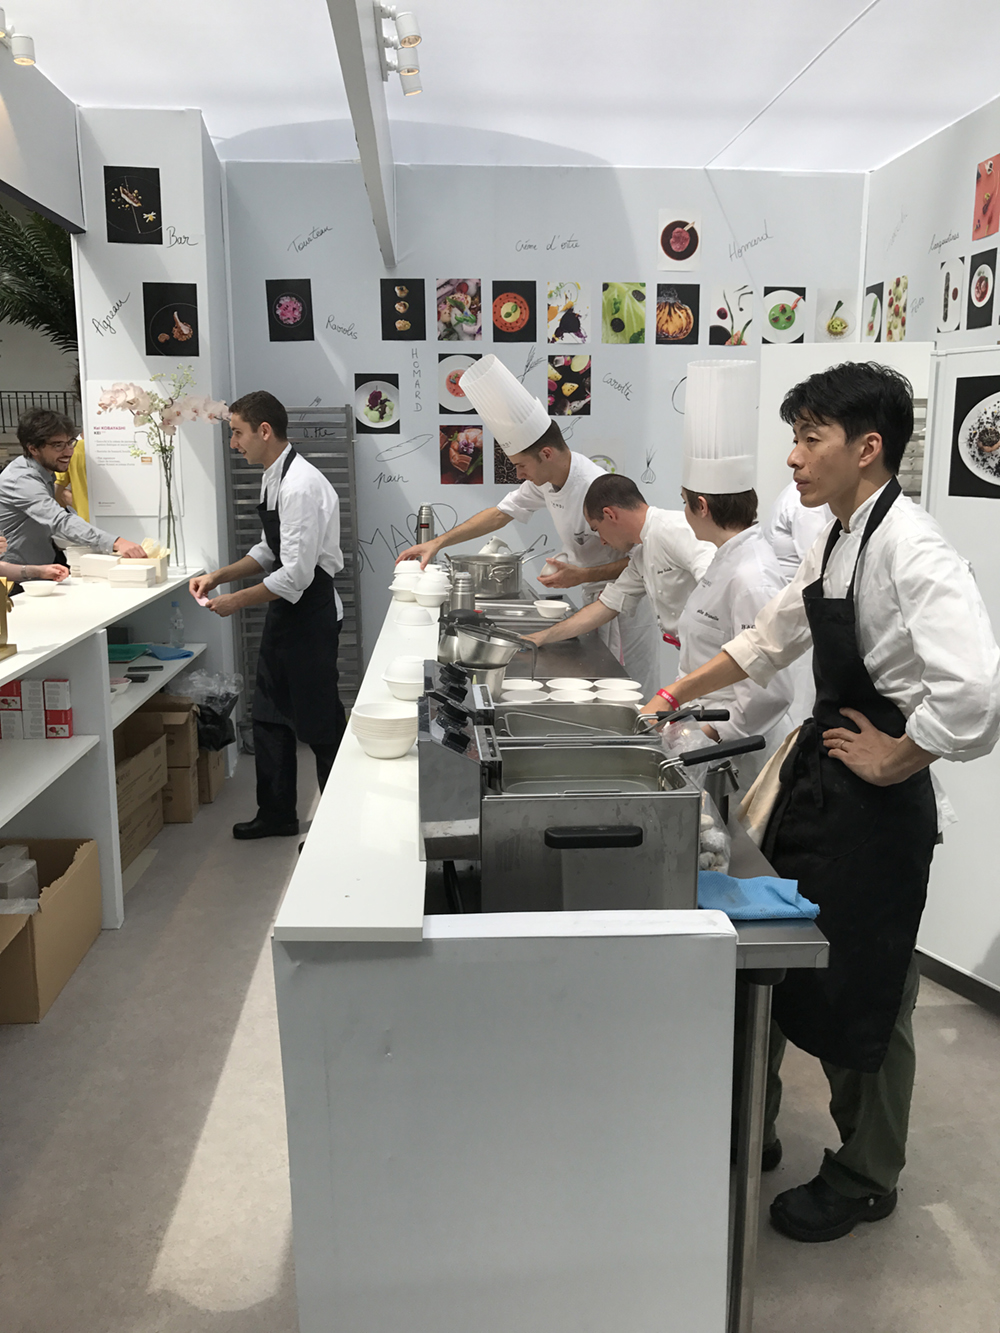 Example of the kitchen setup